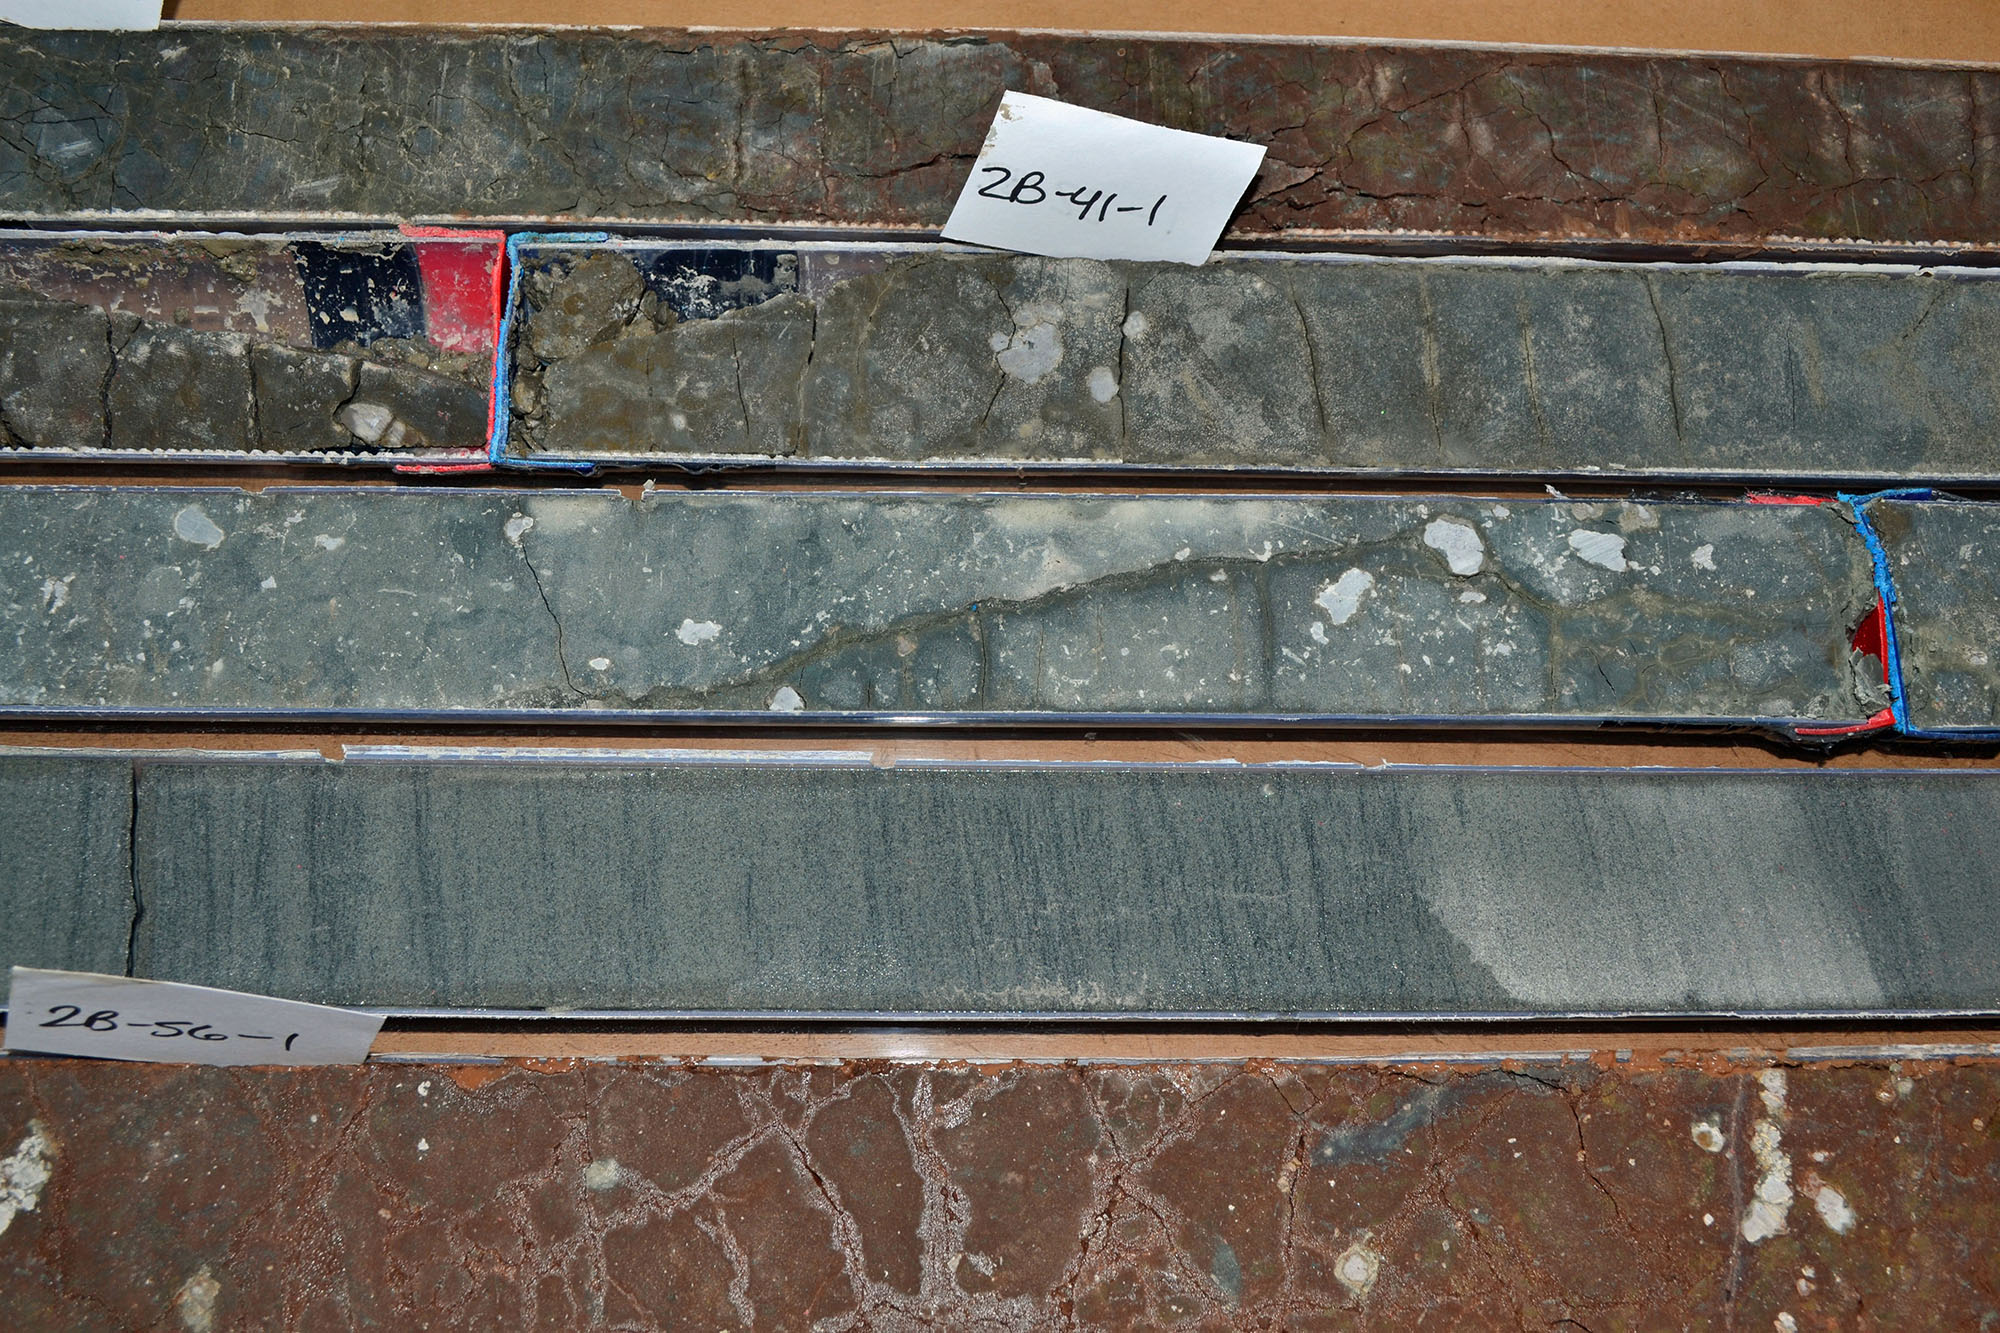 Gray, roundish nodules of carbonate or limestone in these sediment cores drilled from northern   Wyoming revealed the amount of carbon in the atmosphere, oceans, plants and soils during the   Paleocene-Eocene global warming episode some 56 million years ago. A University of Utah-led study   concluded the episode was more like modern, human-caused global warming than previously thought. Image credit: Bianca Maibauer, University of Utah